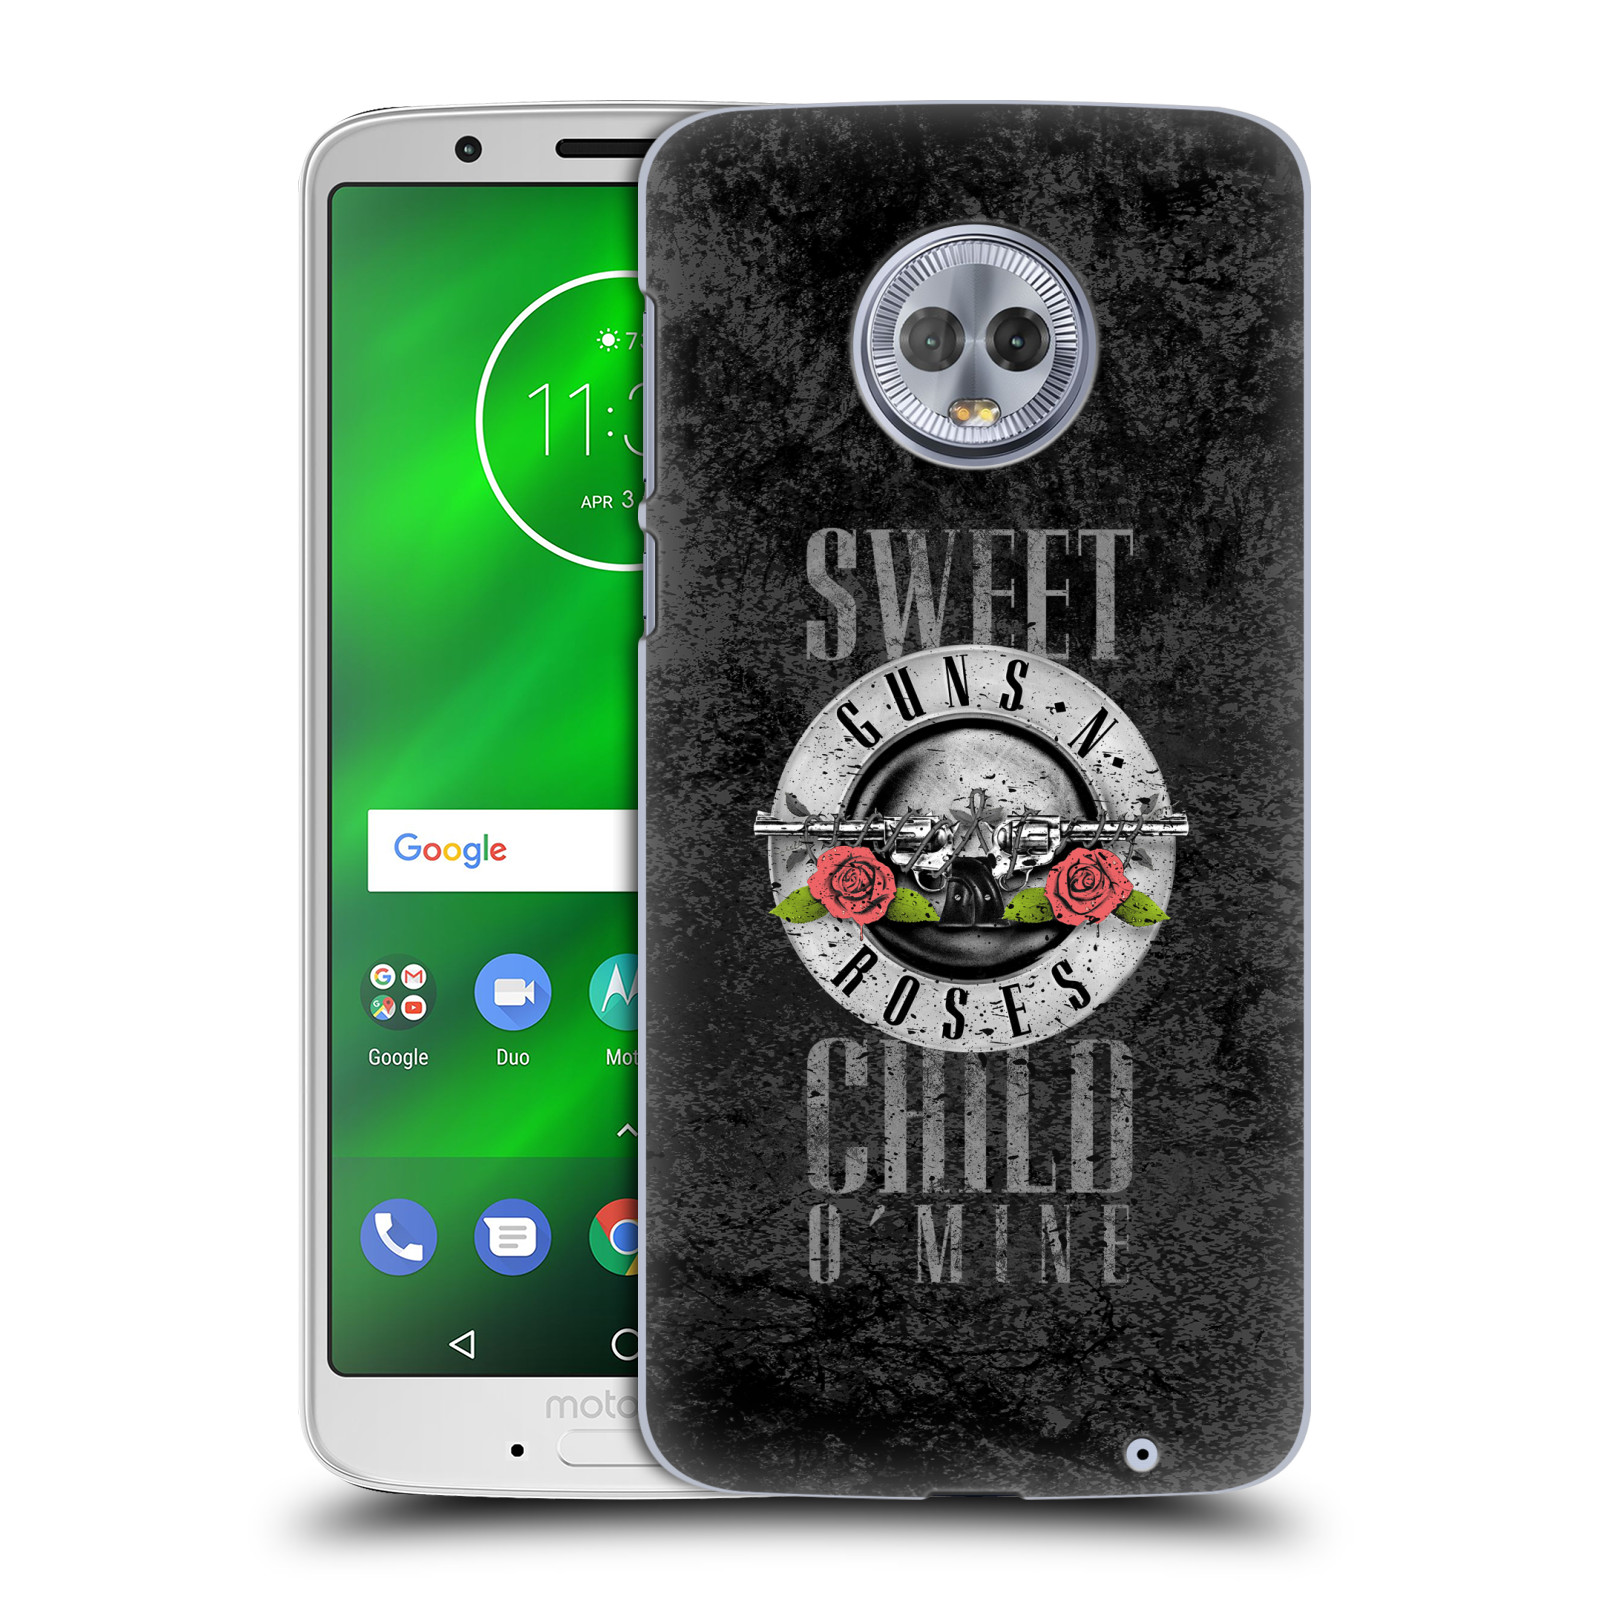 Plastové pouzdro na mobil Motorola Moto G6 Plus - Head Case - Guns N' Roses - Sweet Child